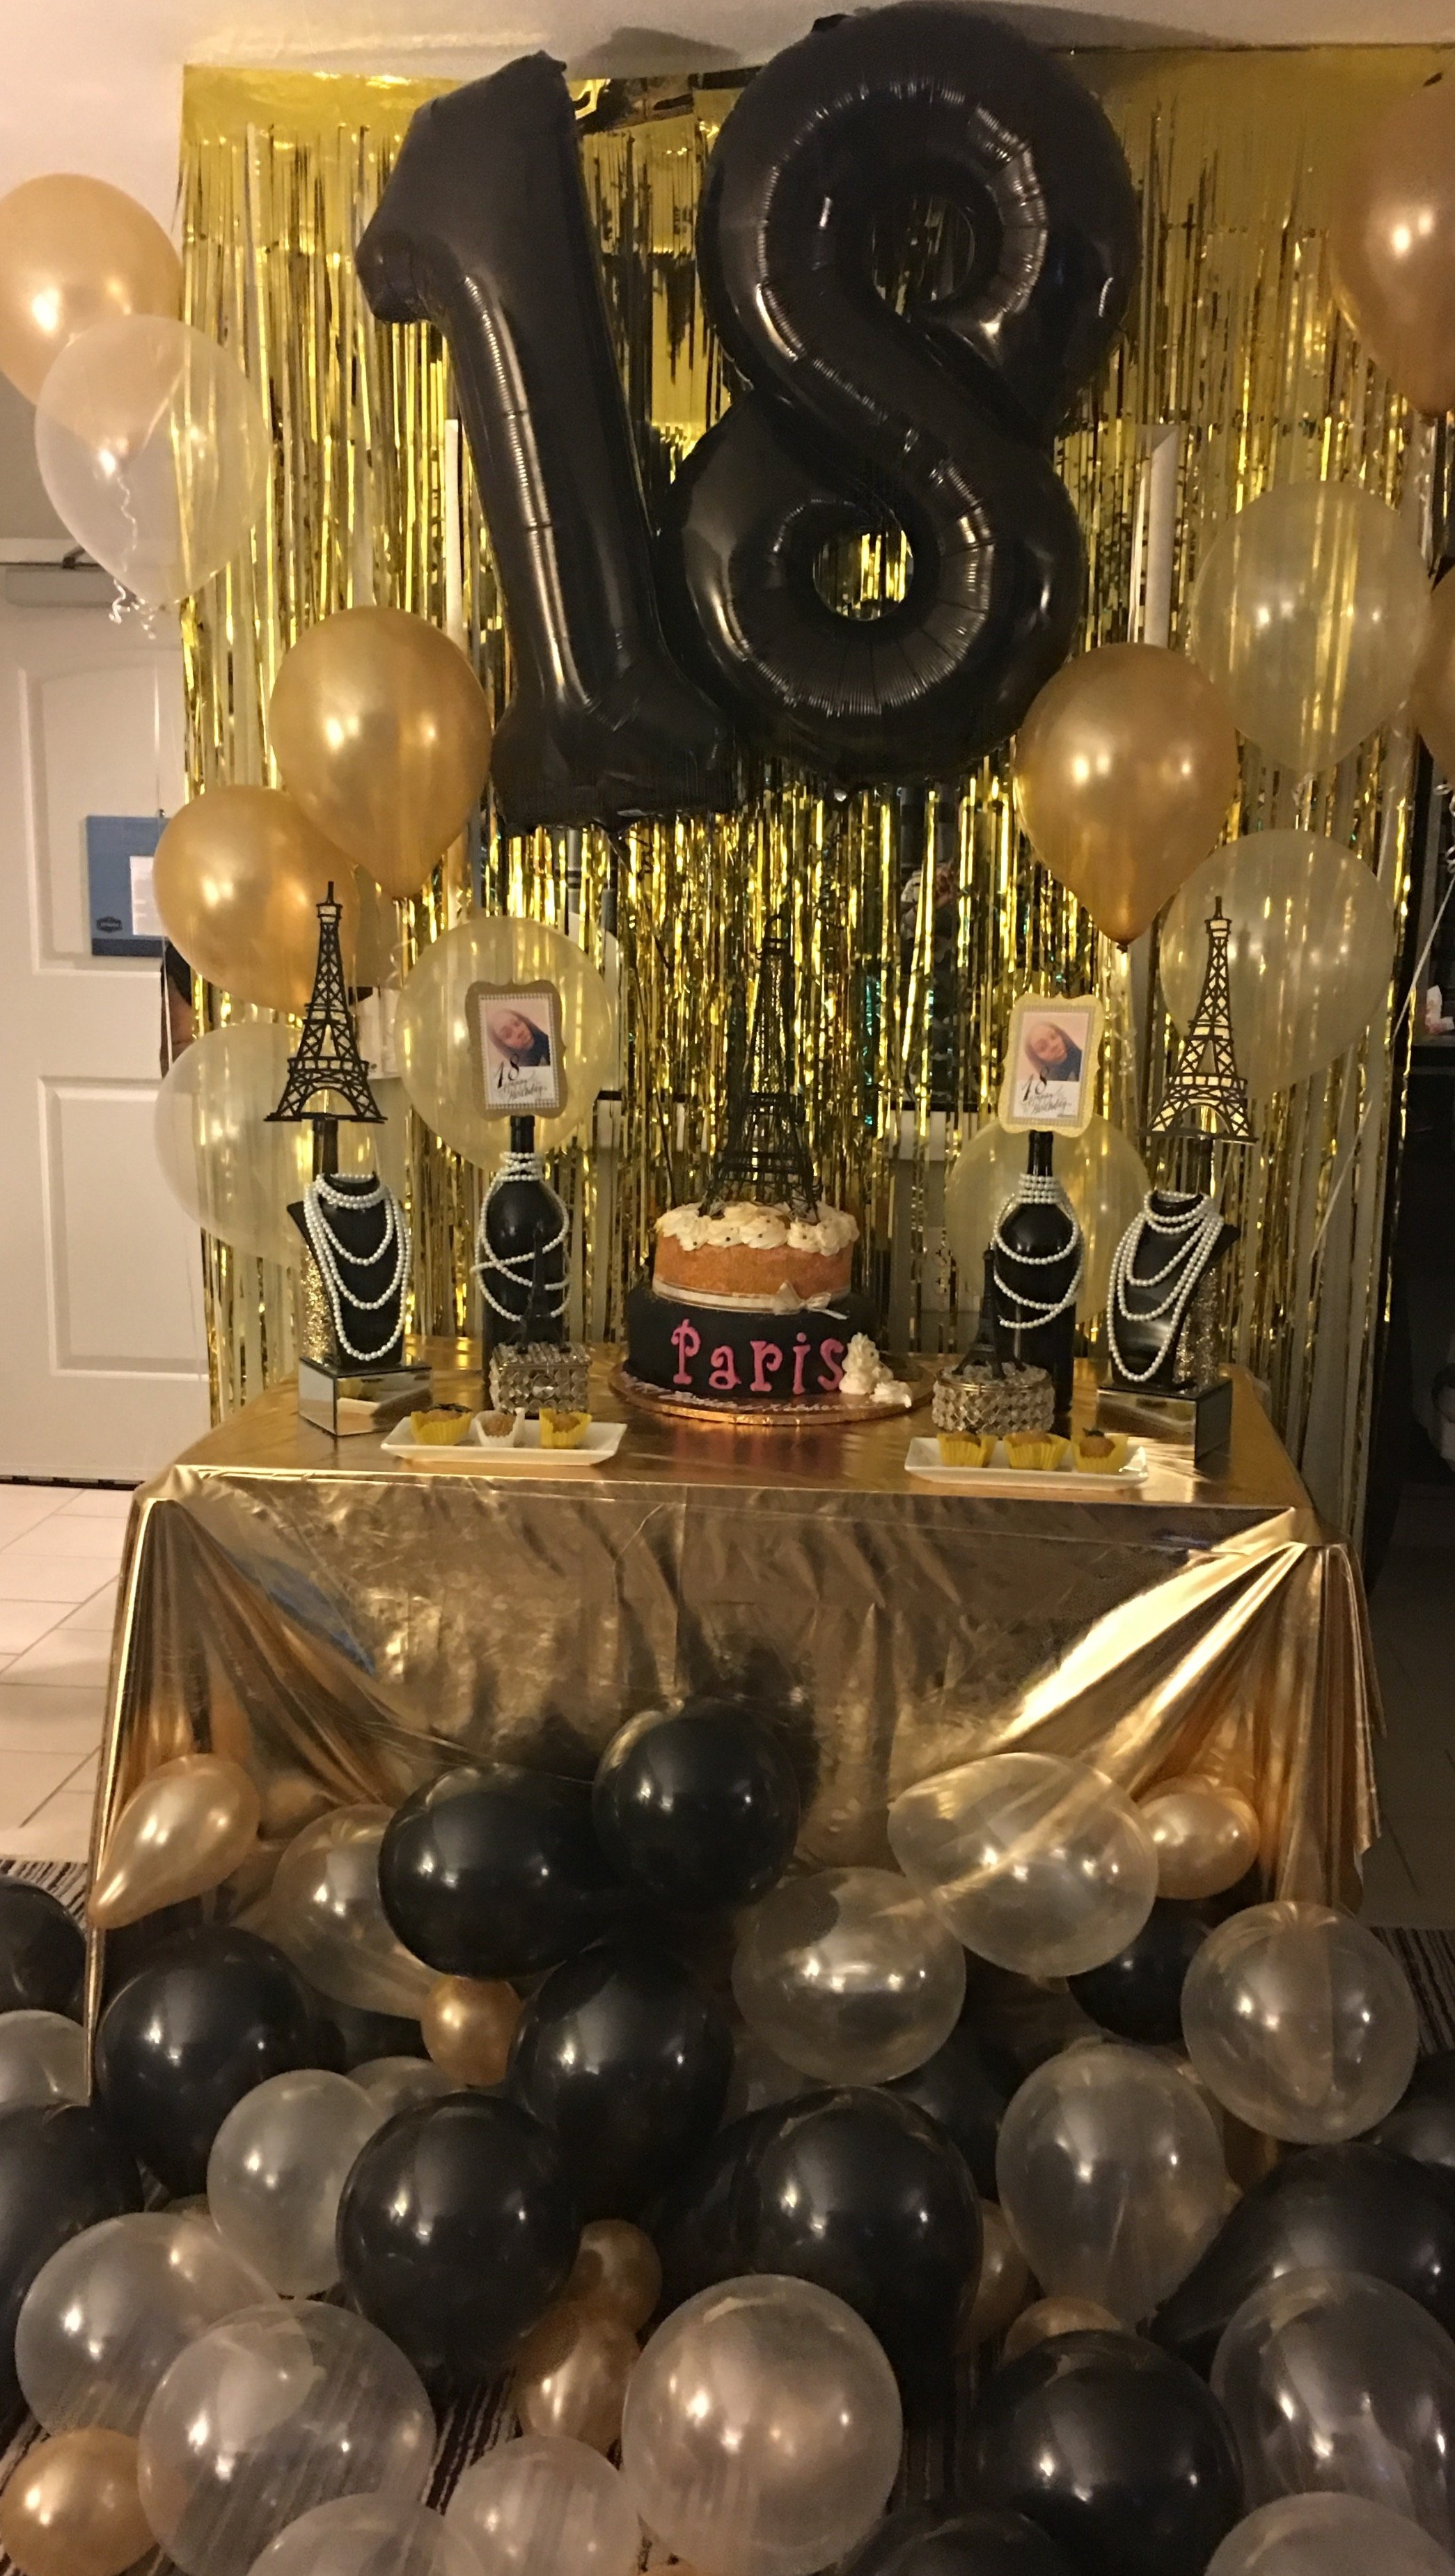 10 Attractive 18Th Birthday Party Ideas For Guys e299a5 e299a5 e2999a pinterest anaislovee e29994 love it pinterest 2020